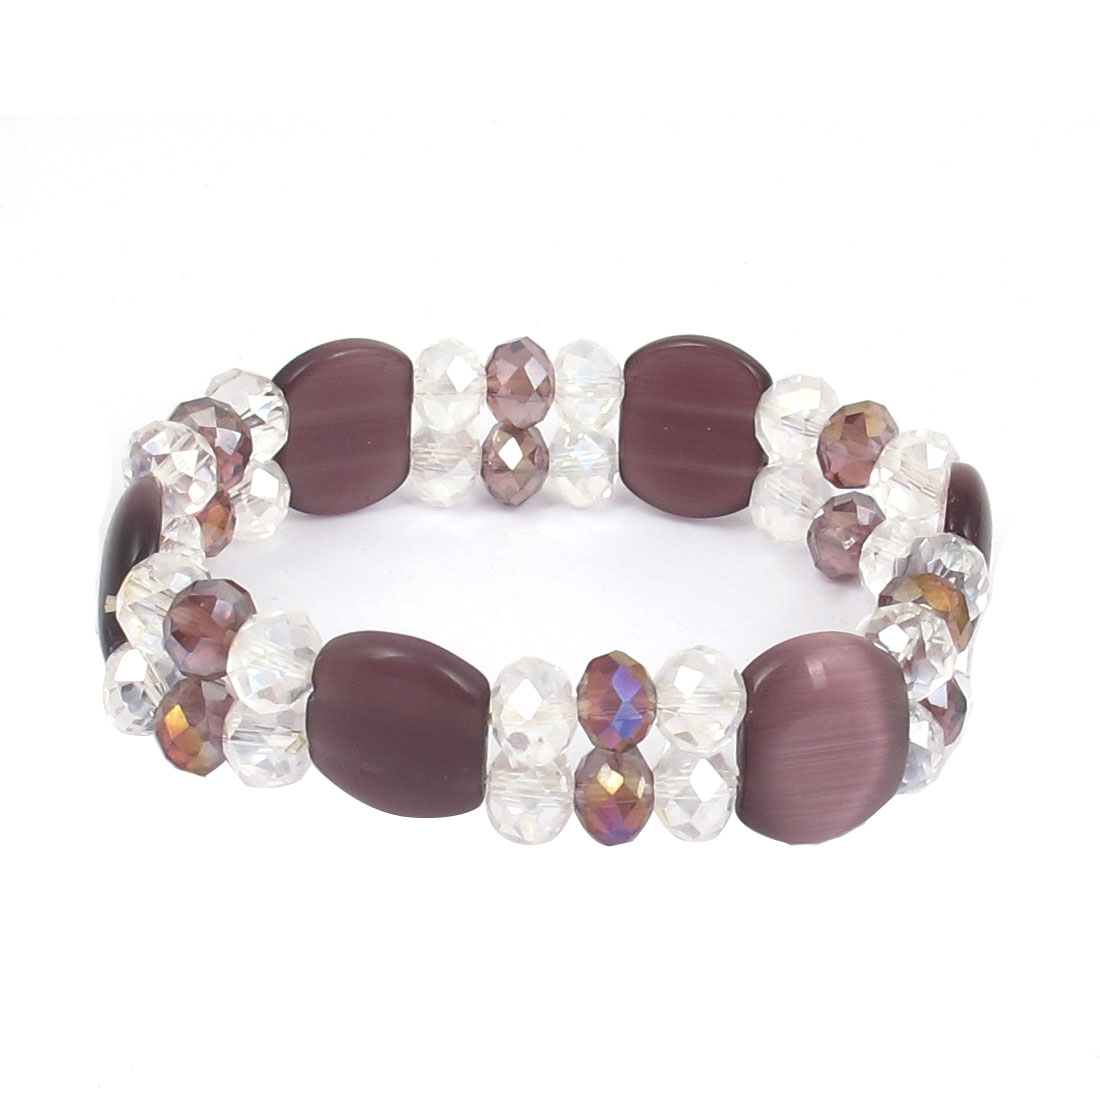 Faceted Faux Crystal Opal Beads Decor Elastic Wrist Bangle Bracelet Purple Clear for Lady